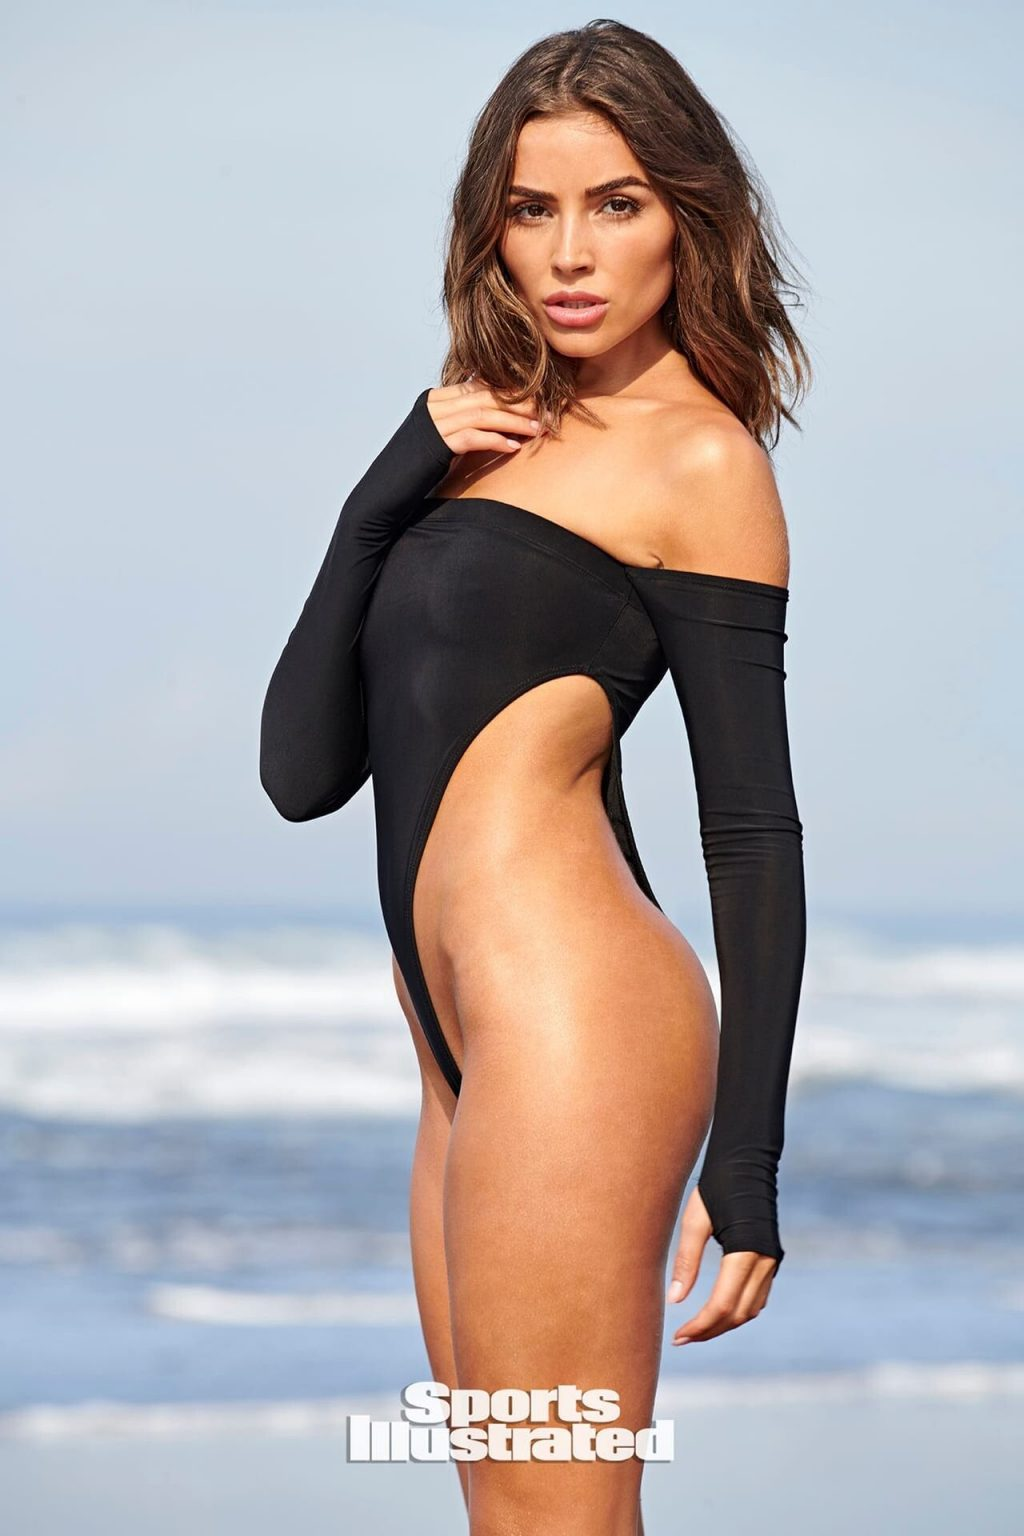 Olivia Culpo See Through & Sexy – Sports Illustrated Swimsuit (54 Photos)